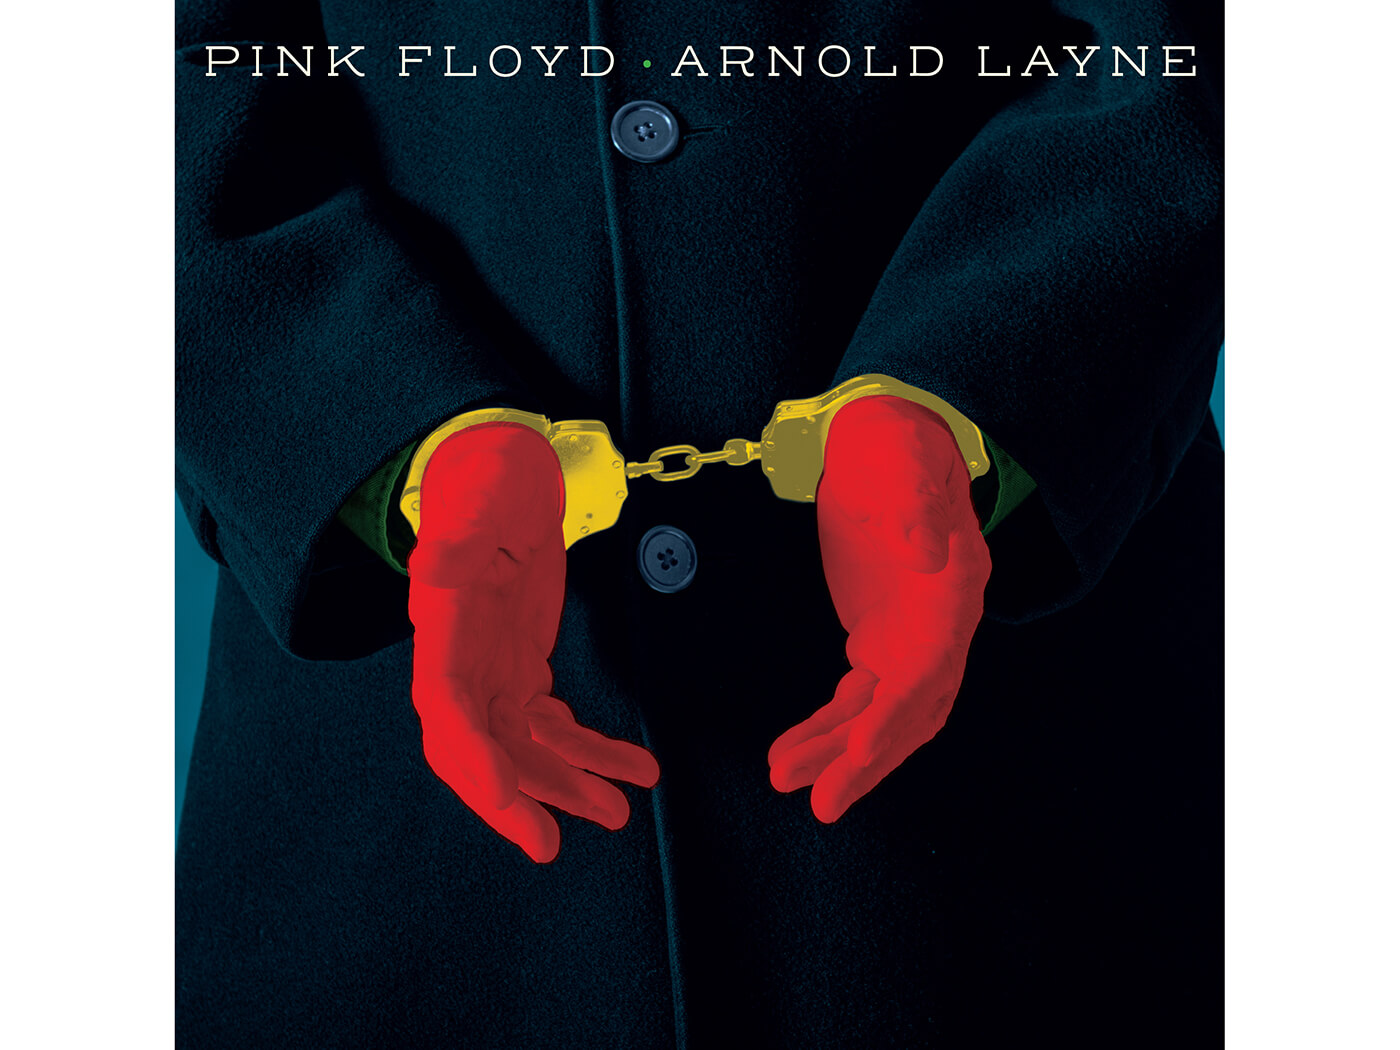 """Pink Floyd to release live version of """"Arnold Layne"""" for Record Store Day"""